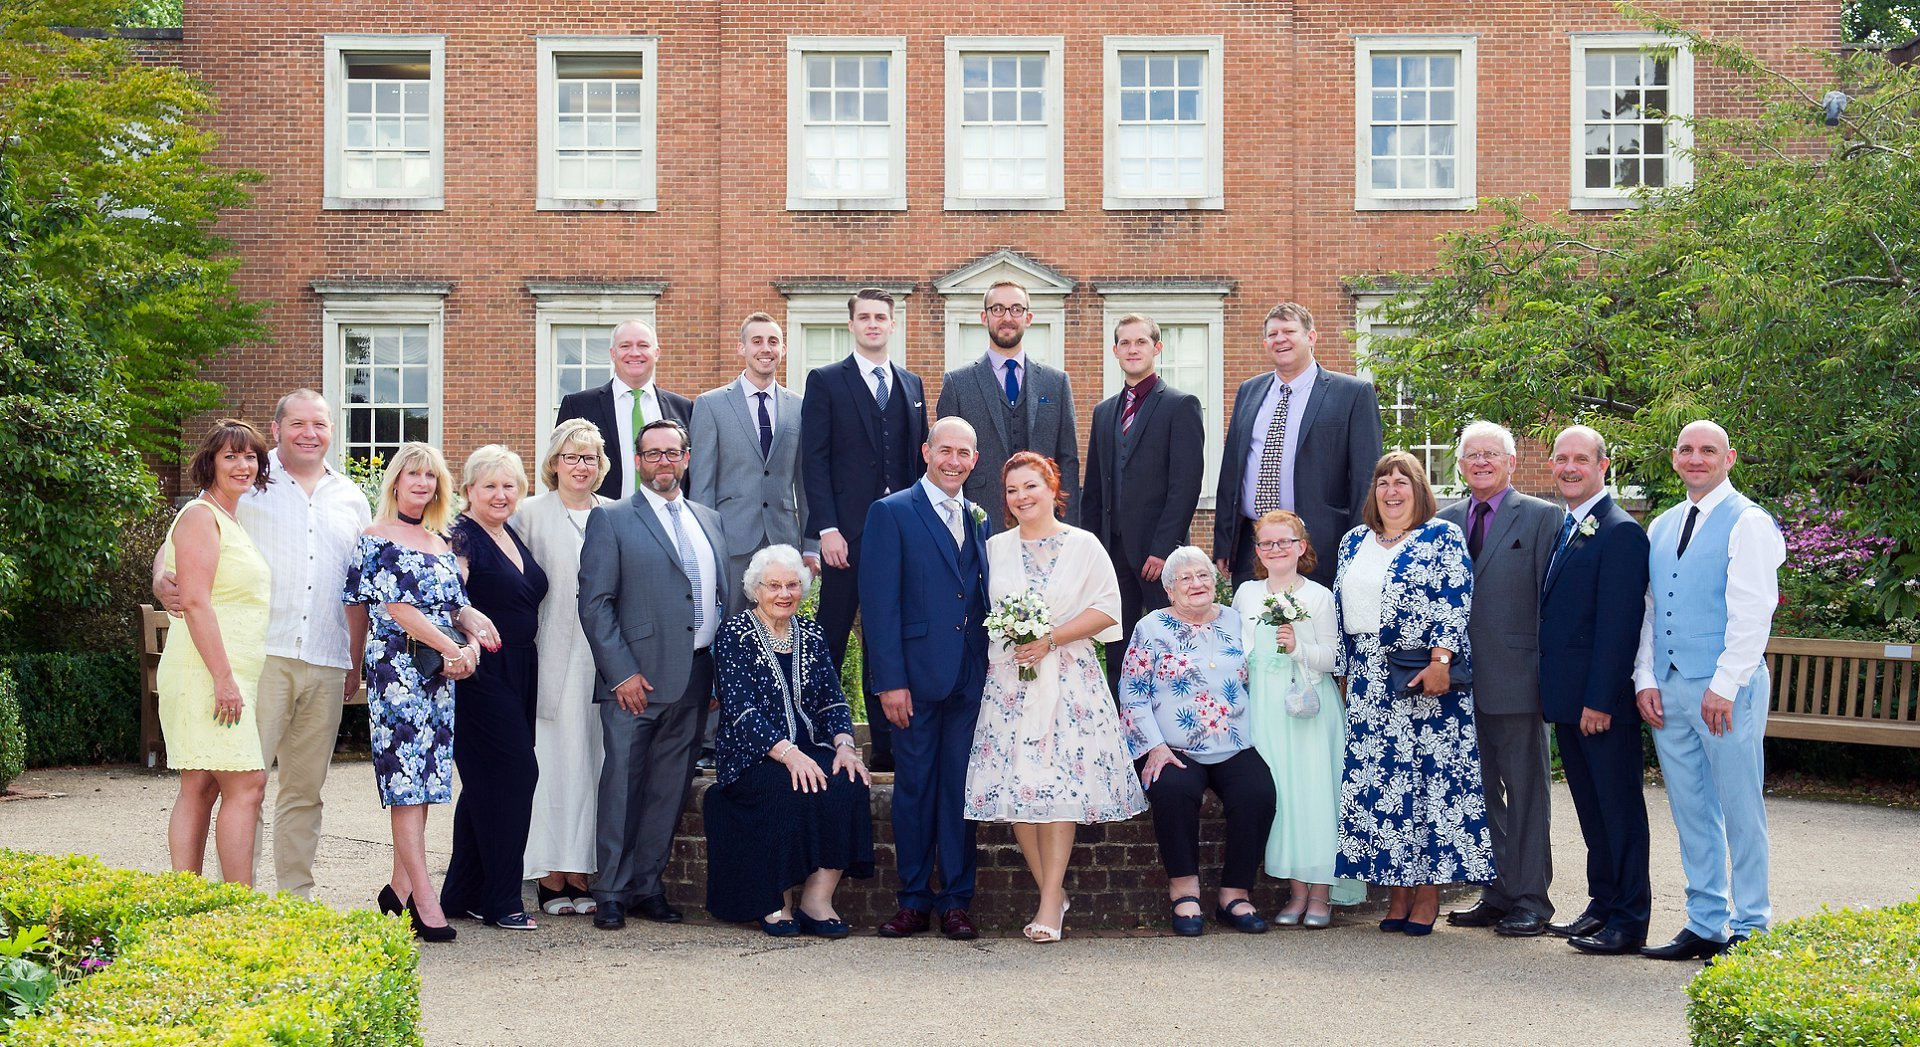 Park House Horsham wedding photography is perfect for group photographs in the enclosed garden behind the 17th century Georgian house which is Grade II listed - this group photograph works really well and shows all the bride and groom's wedding guests